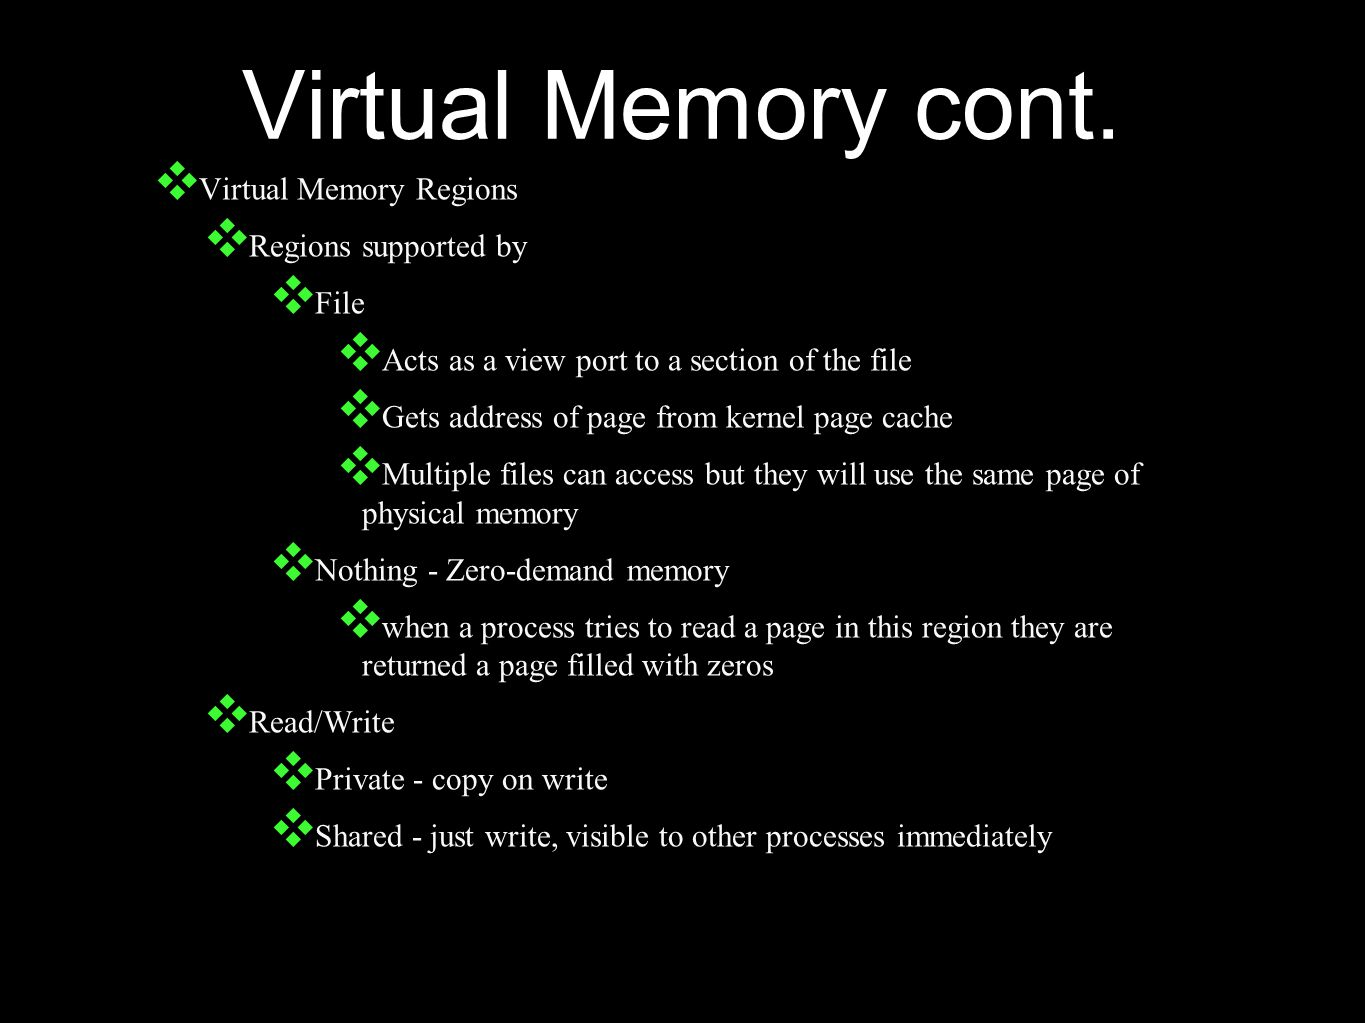 Virtual Memory cont. ❖ Virtual Memory Regions ❖ Regions supported by ❖ File ❖ Acts as a view port to a section of the file ❖ Gets address of page from